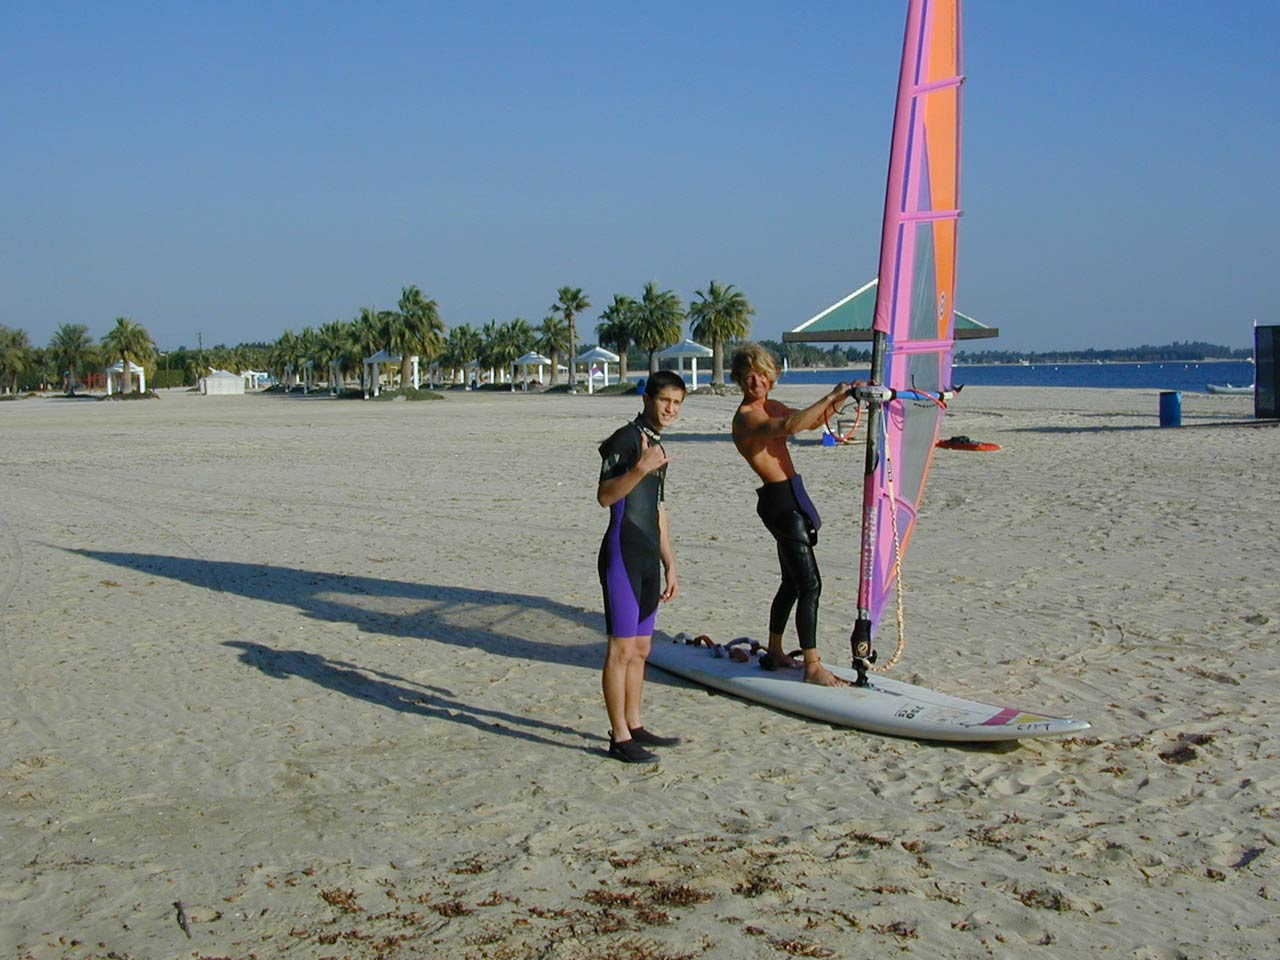 Andrew Kochinski taking windsurfing lessons from John Nielson, a teacher at Dh School